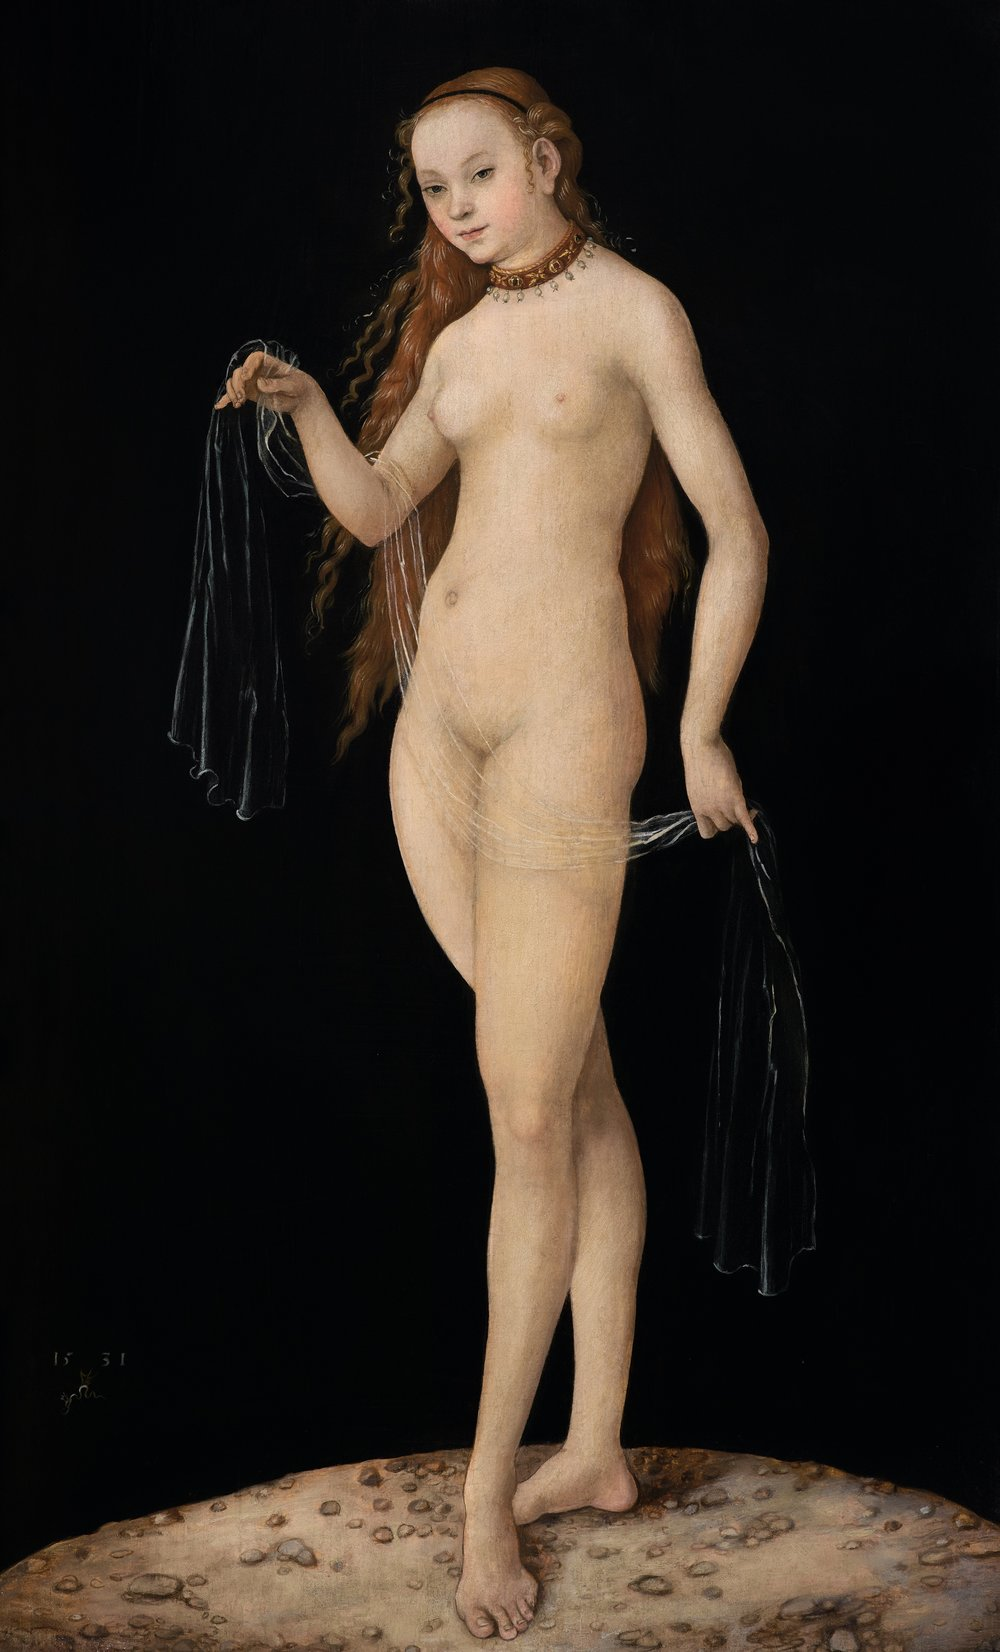 Venus , 1531, attributed to Lucas Cranach the Elder